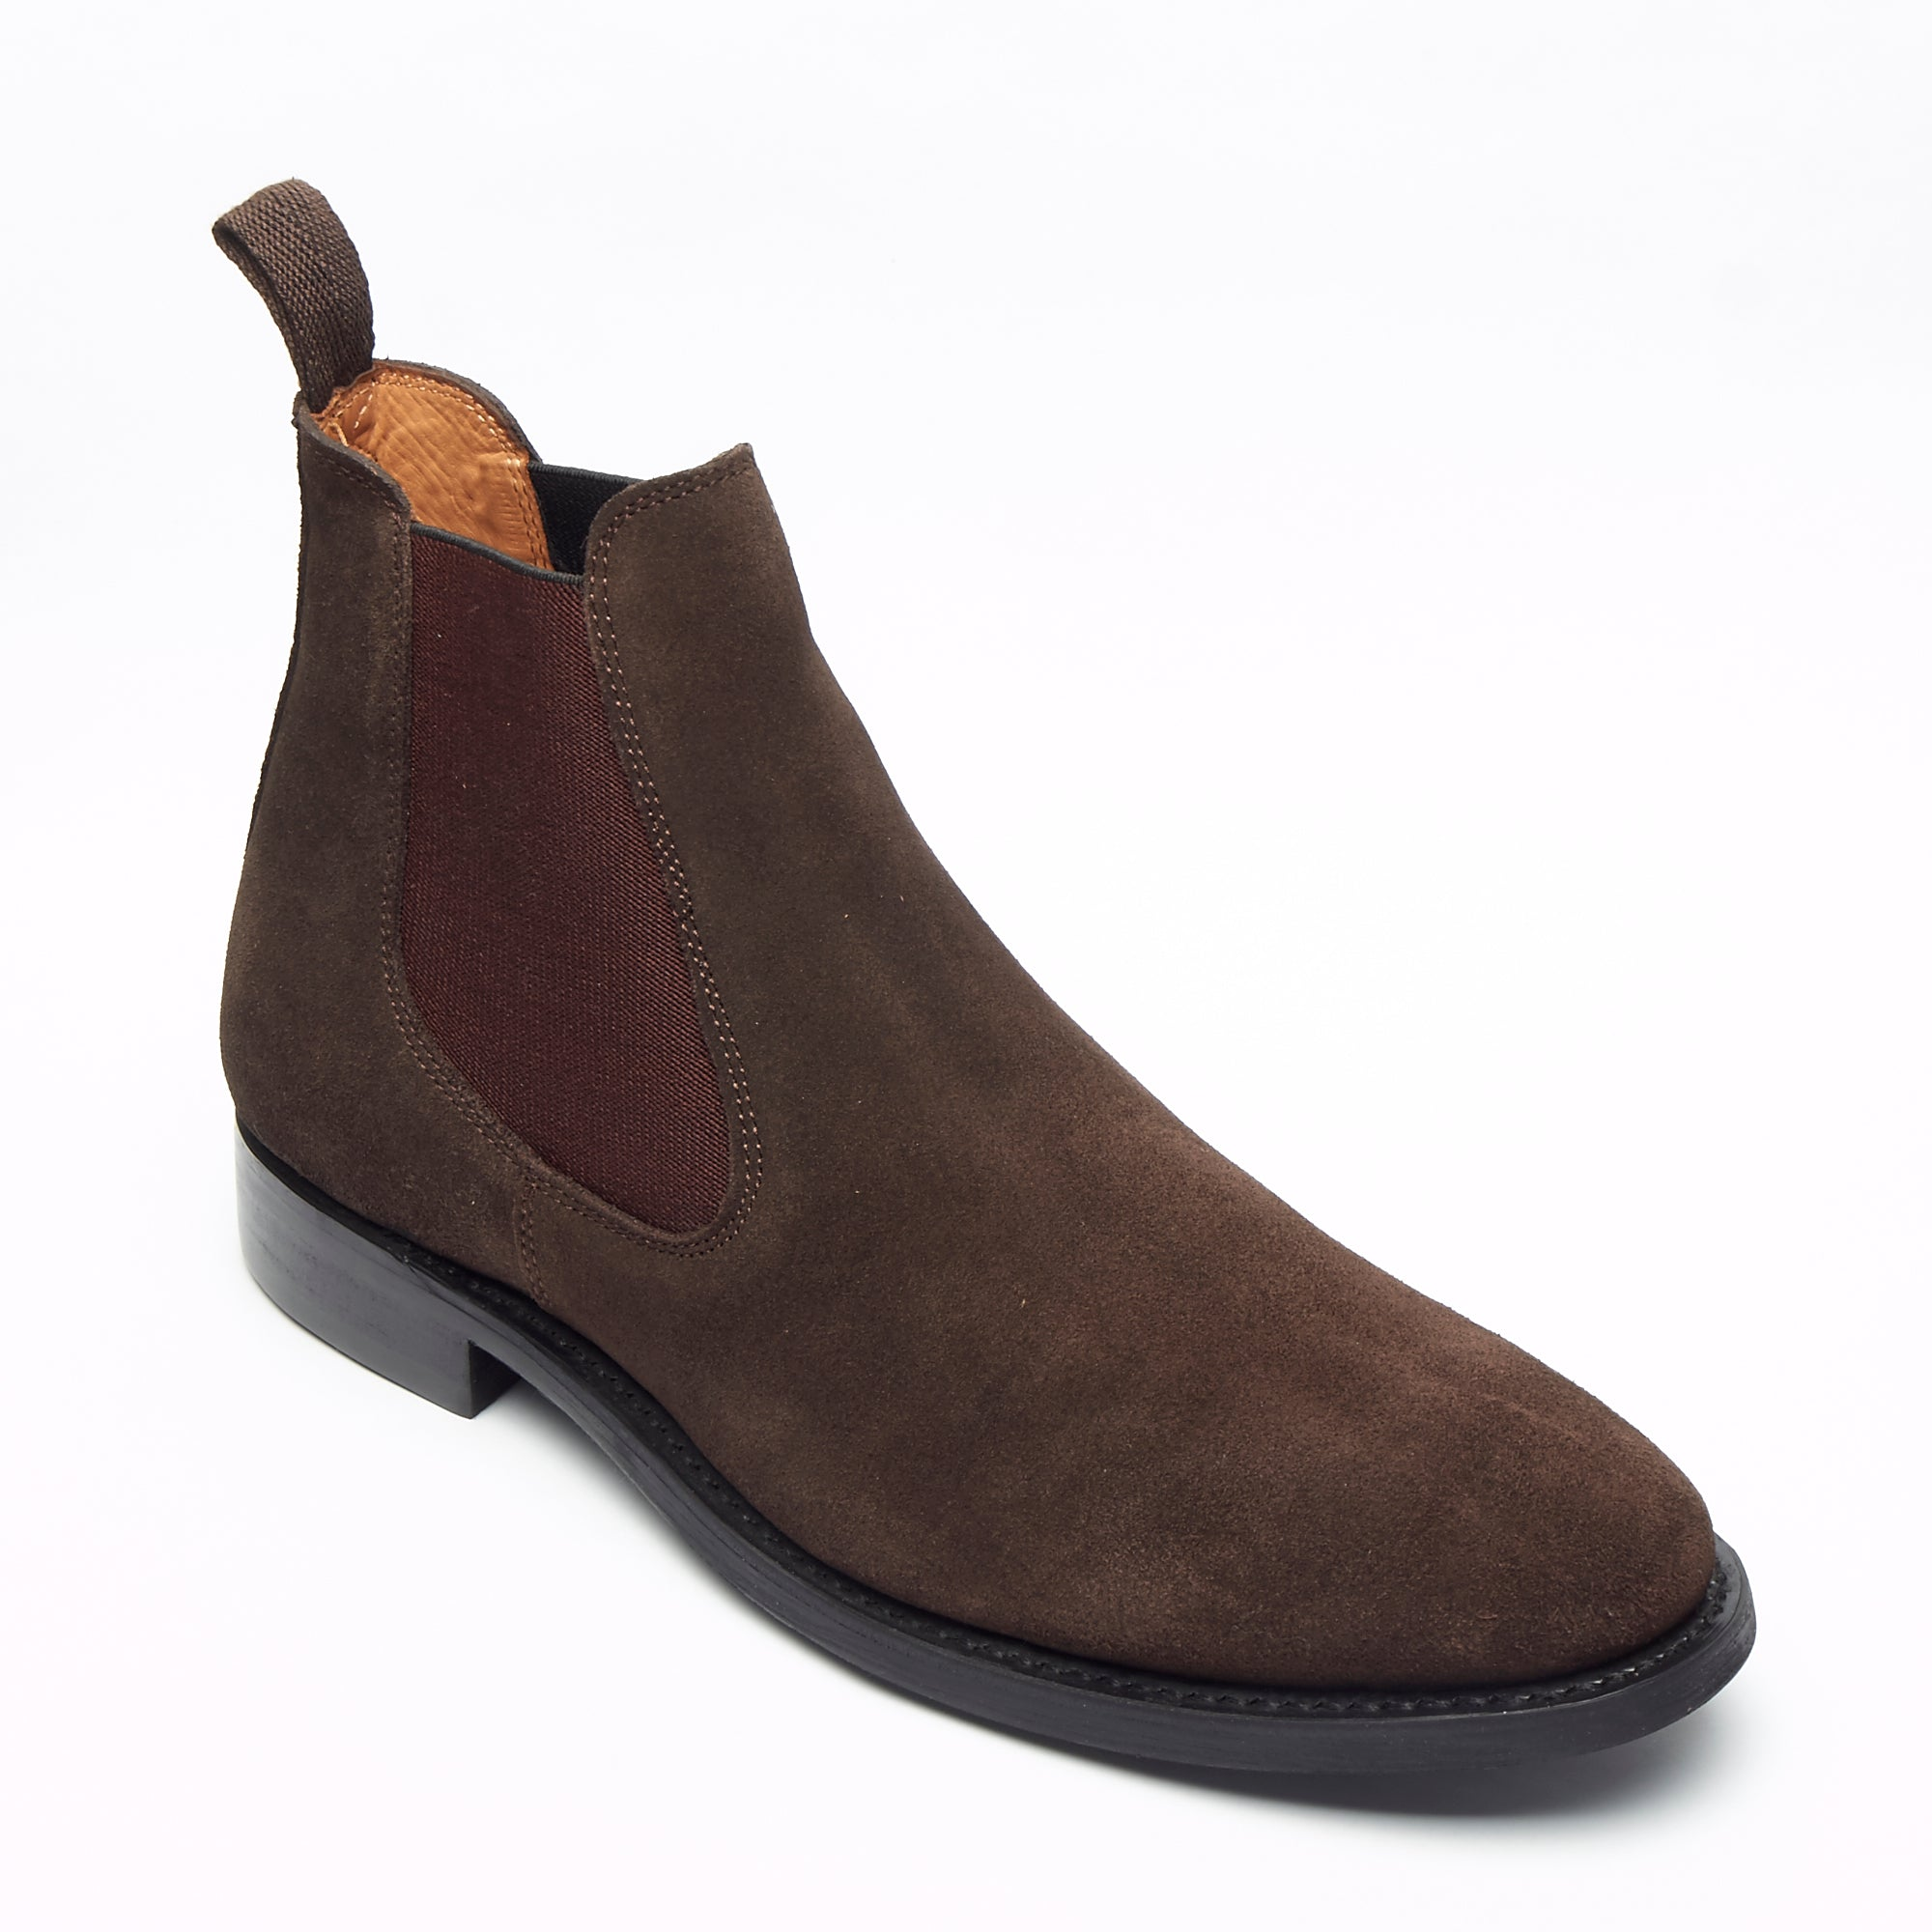 Mens Goodyear Welted Suede Chelsea Boots - 27817 Brown